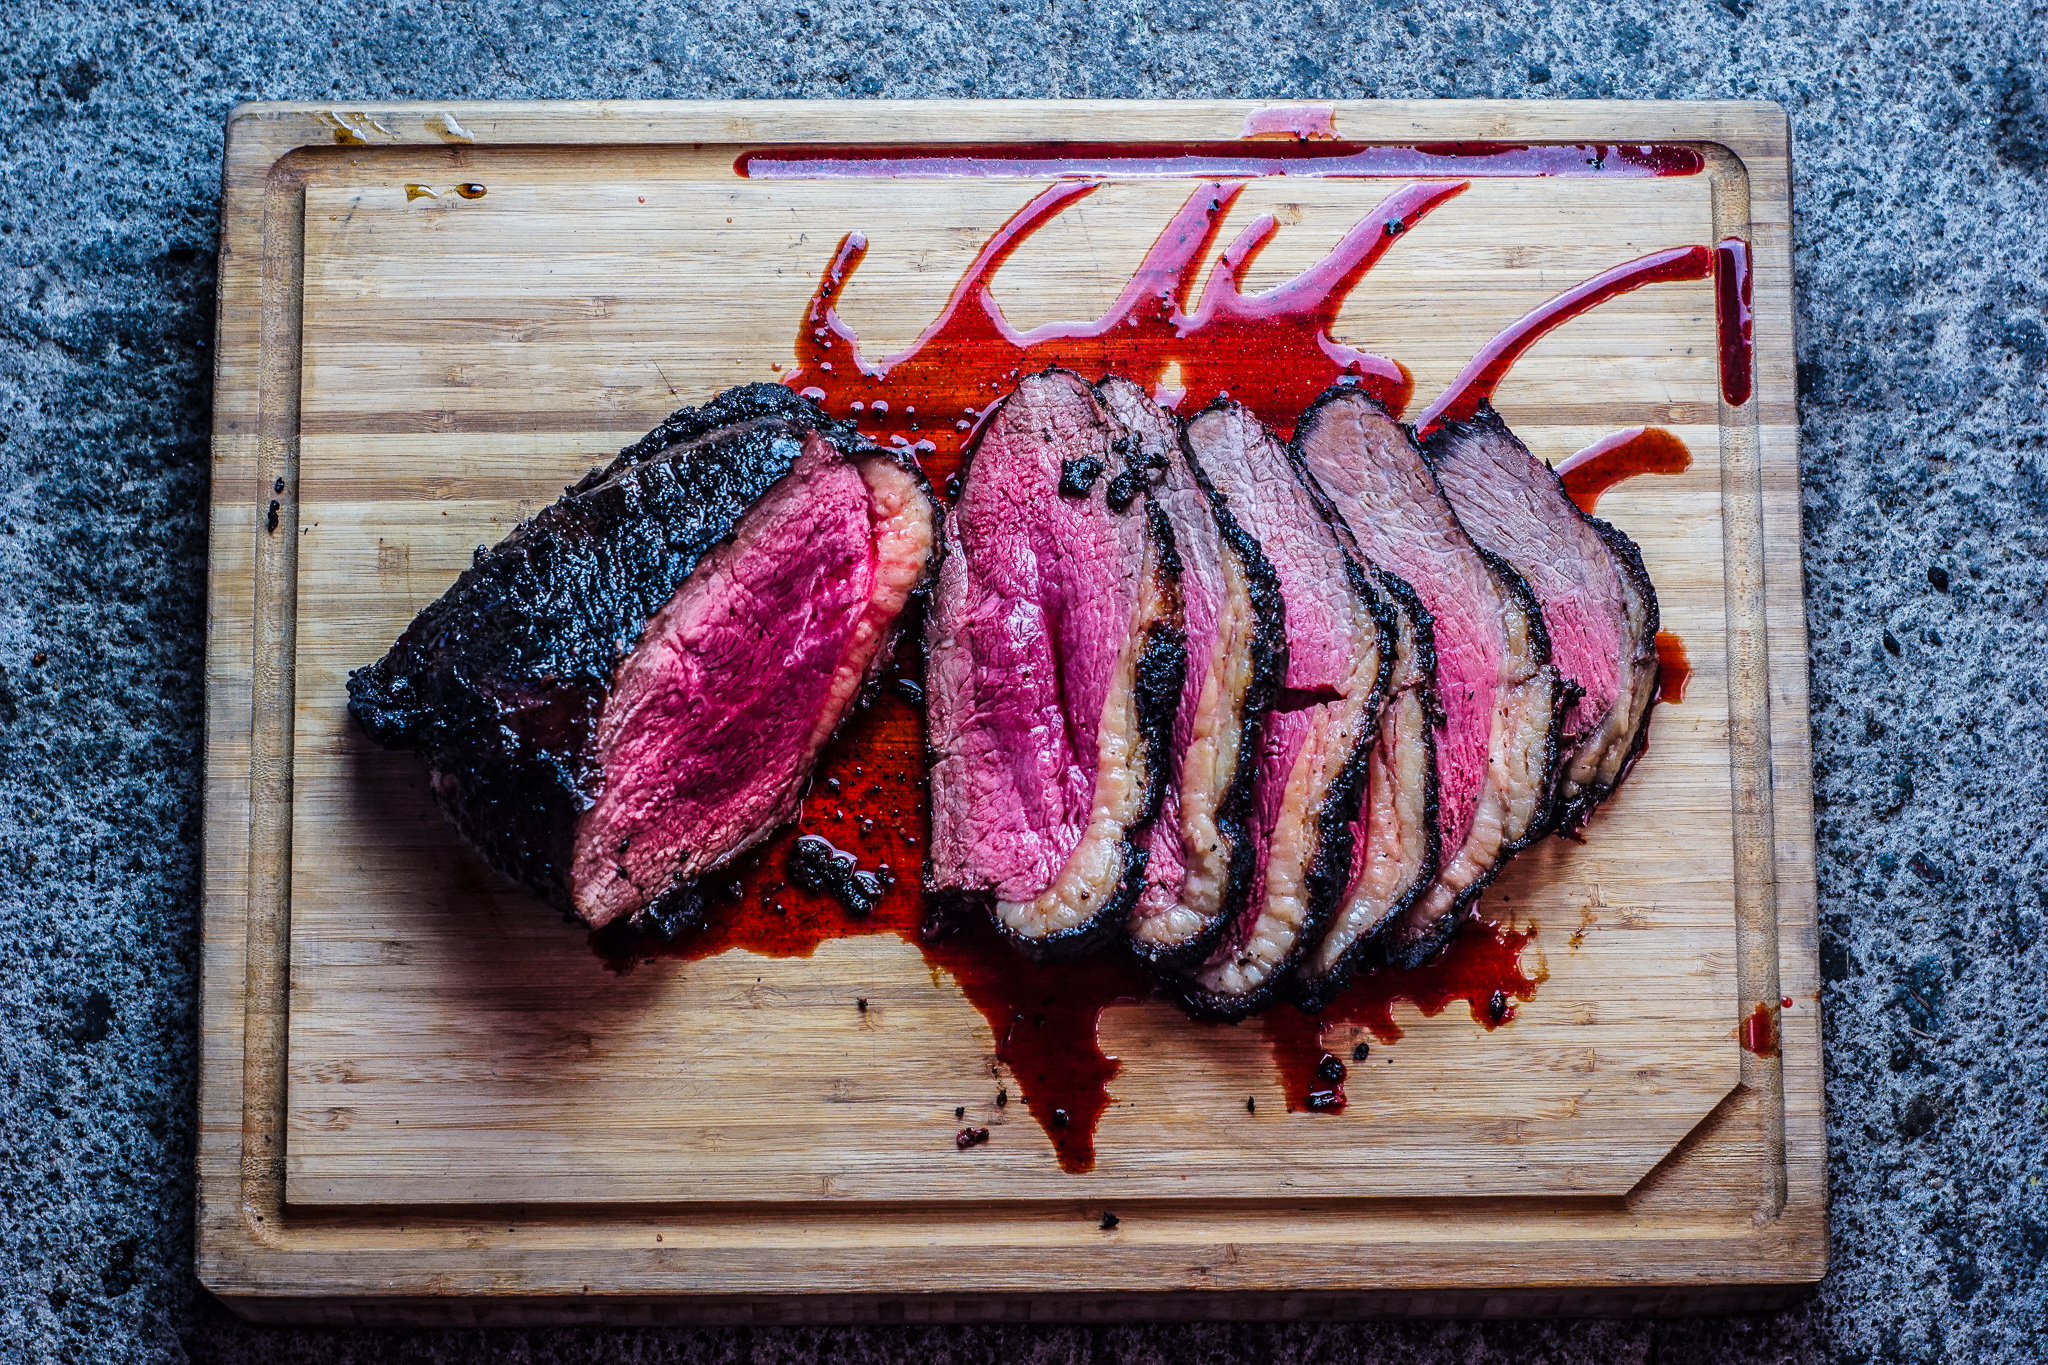 Smoky Charcoal-grilled Beef Rump (+Others!)